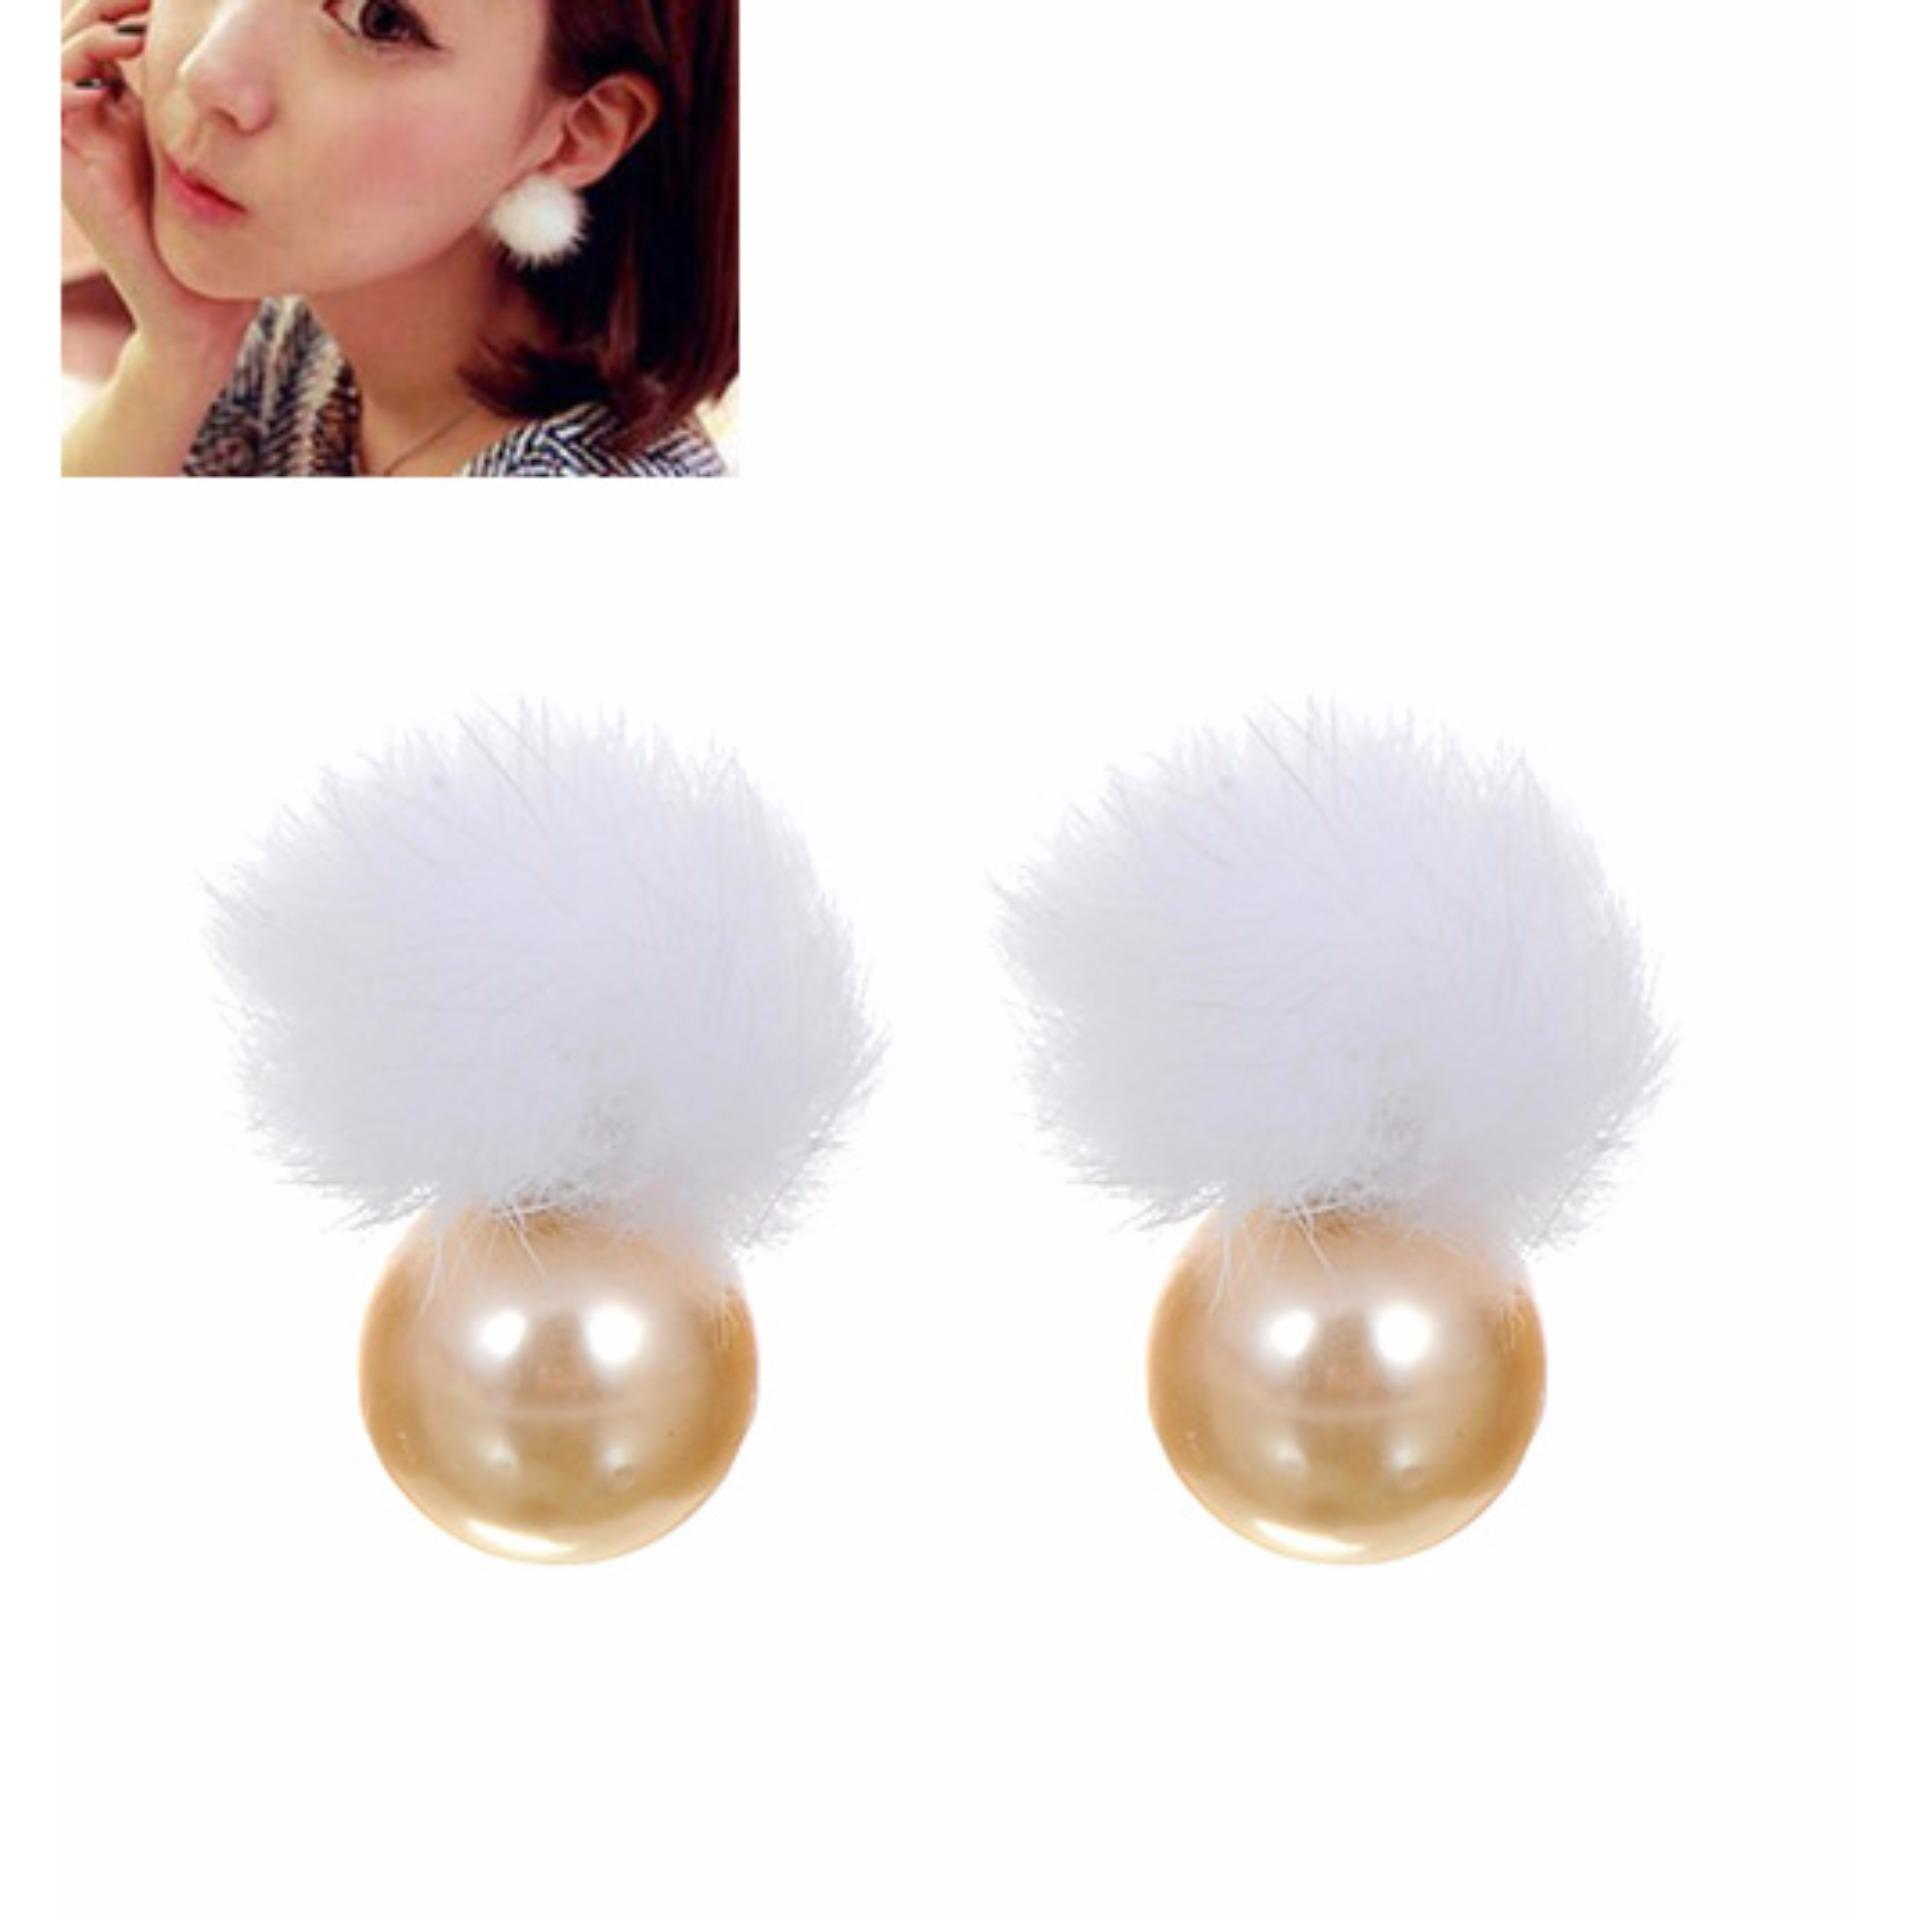 ... Black Source · LRC Anting Tusuk Lovely Yellow k Fuzzy Ball Decorated Earrings